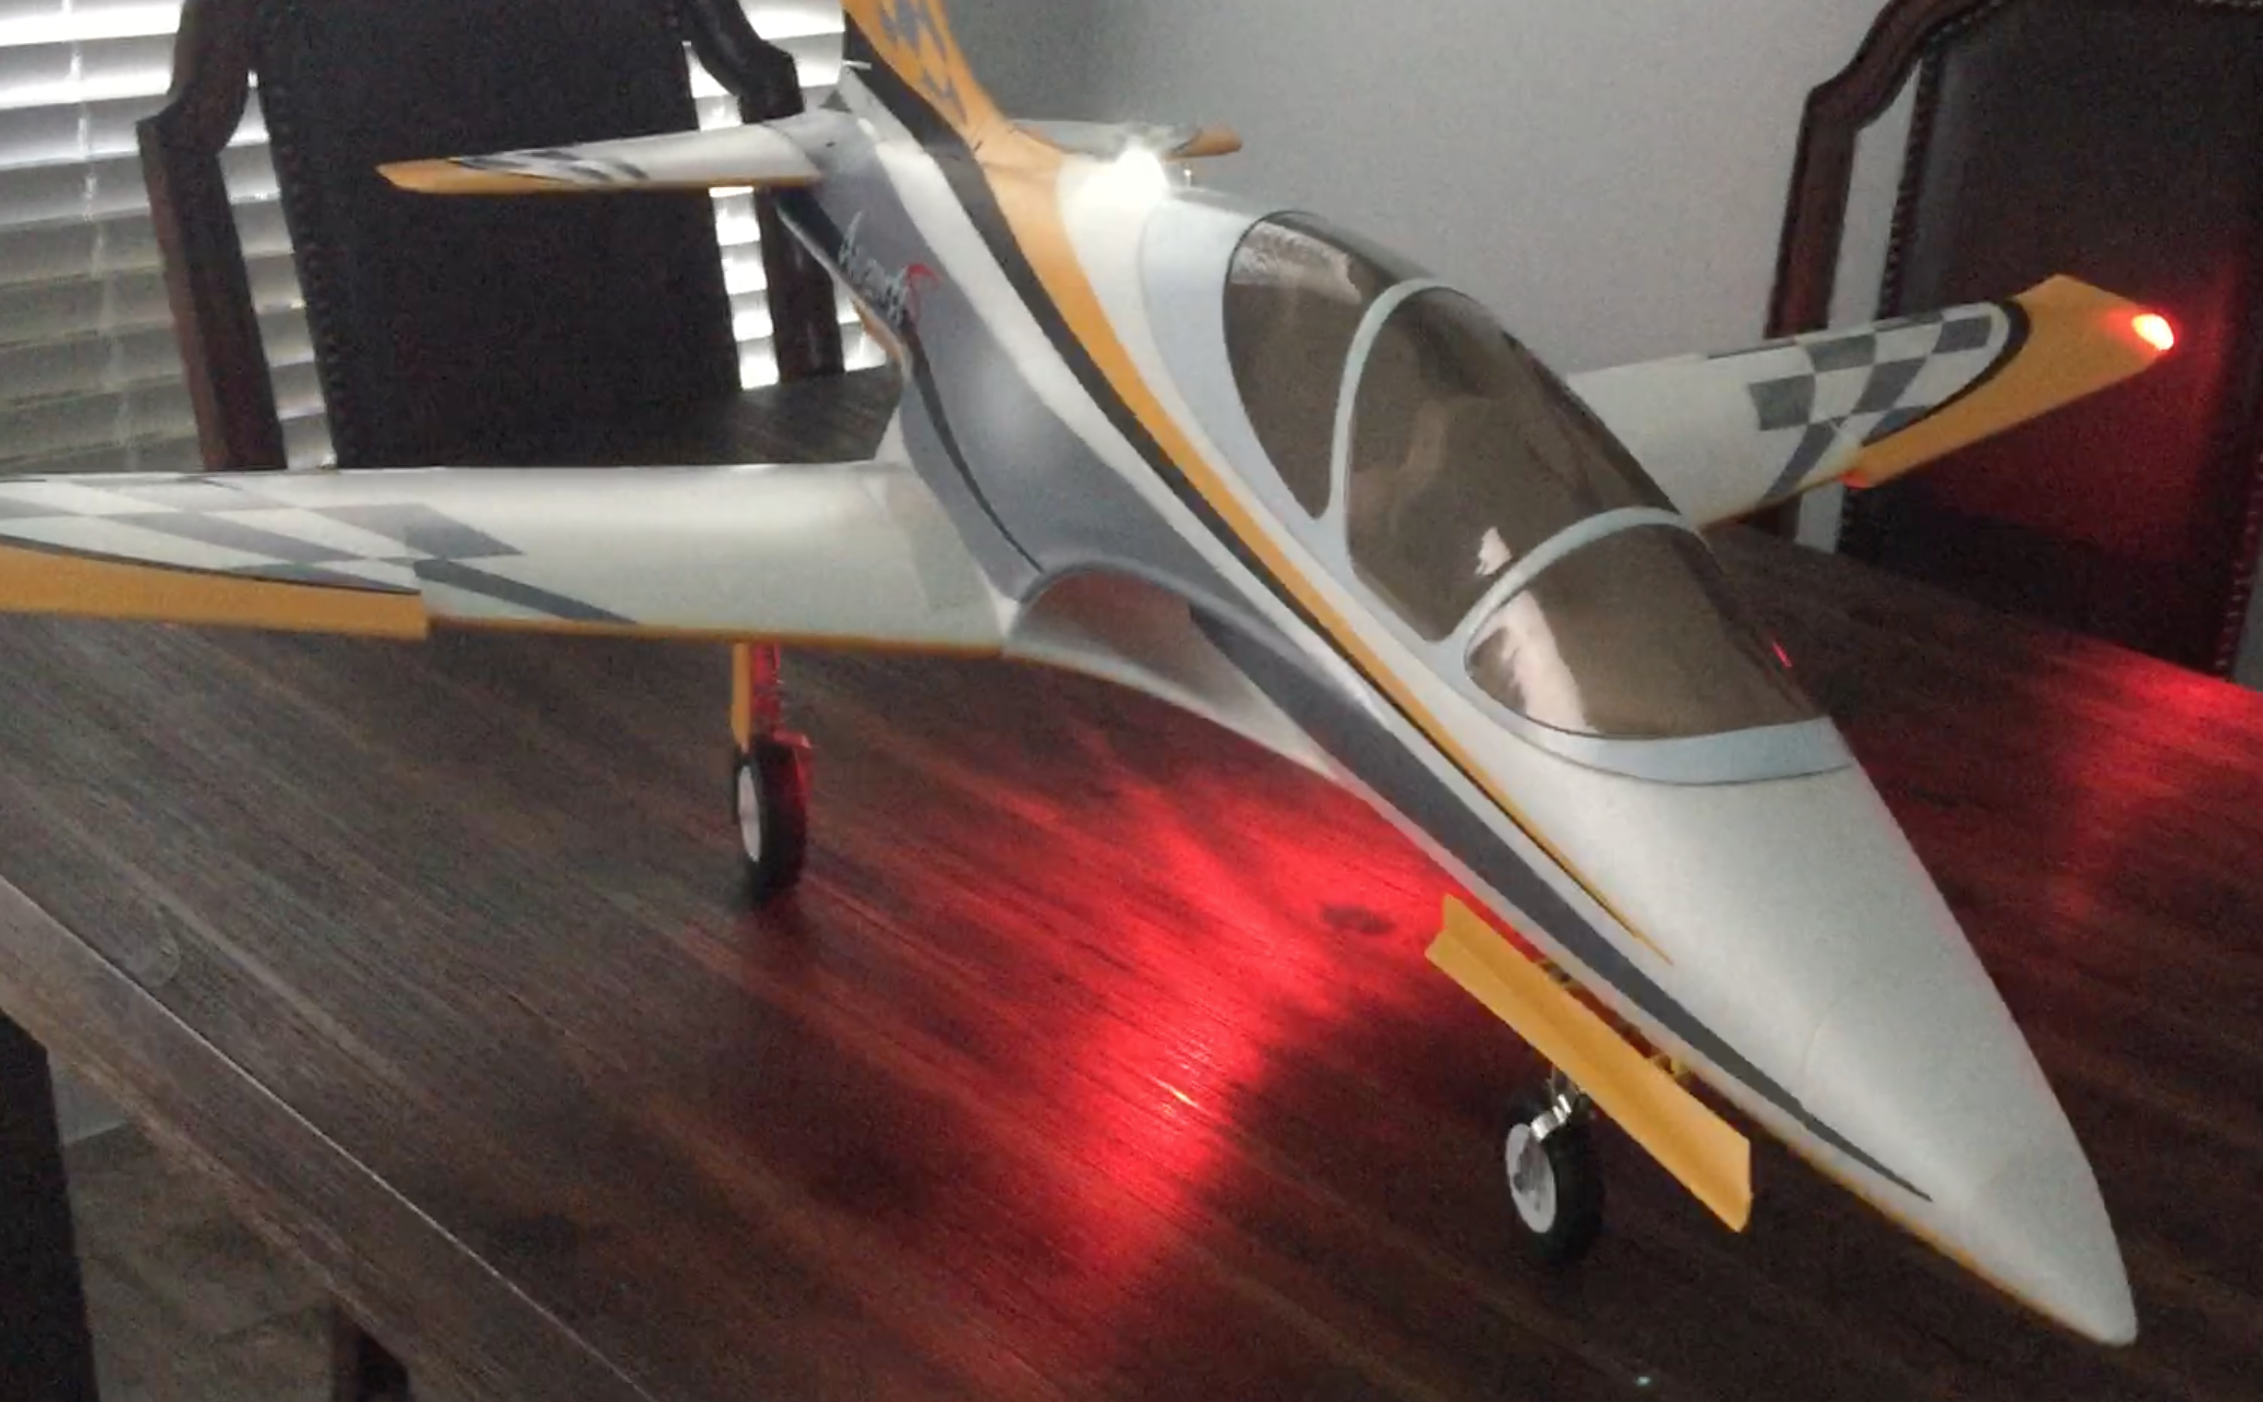 Freewing Avanti S 80 mm EDF Jet